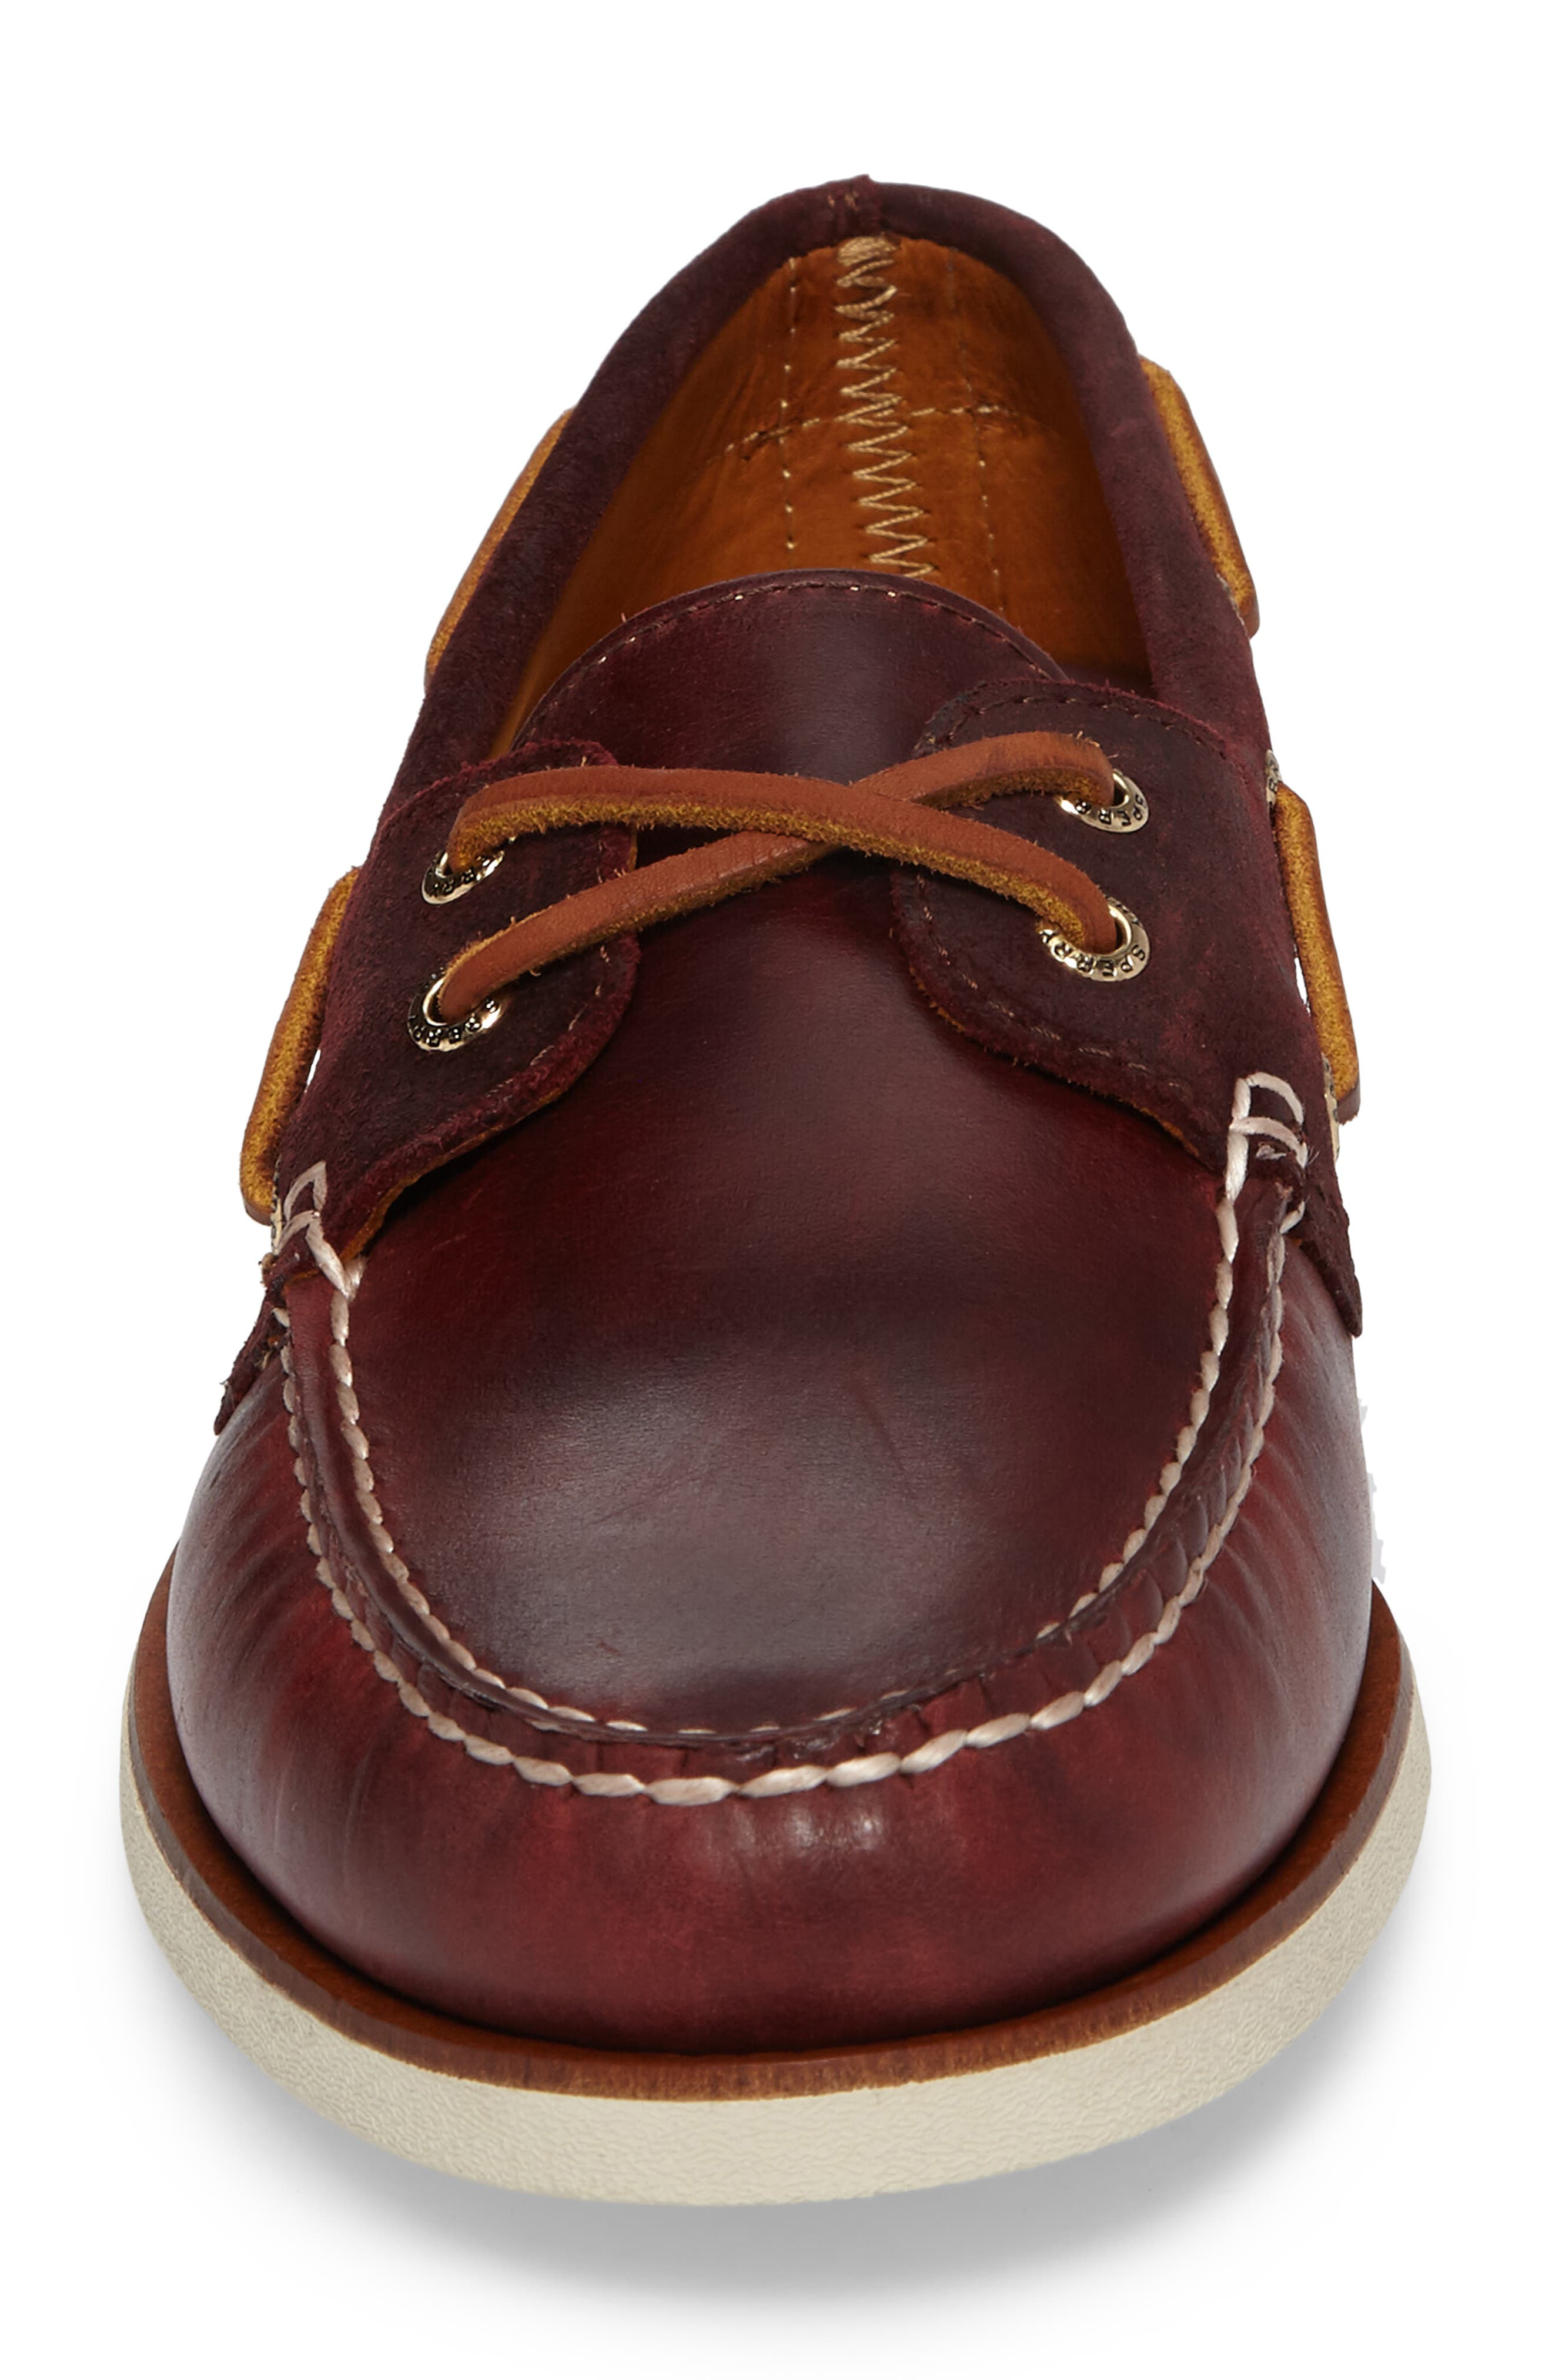 Gold Cyclone Boat Shoe,                             Alternate thumbnail 4, color,                             931